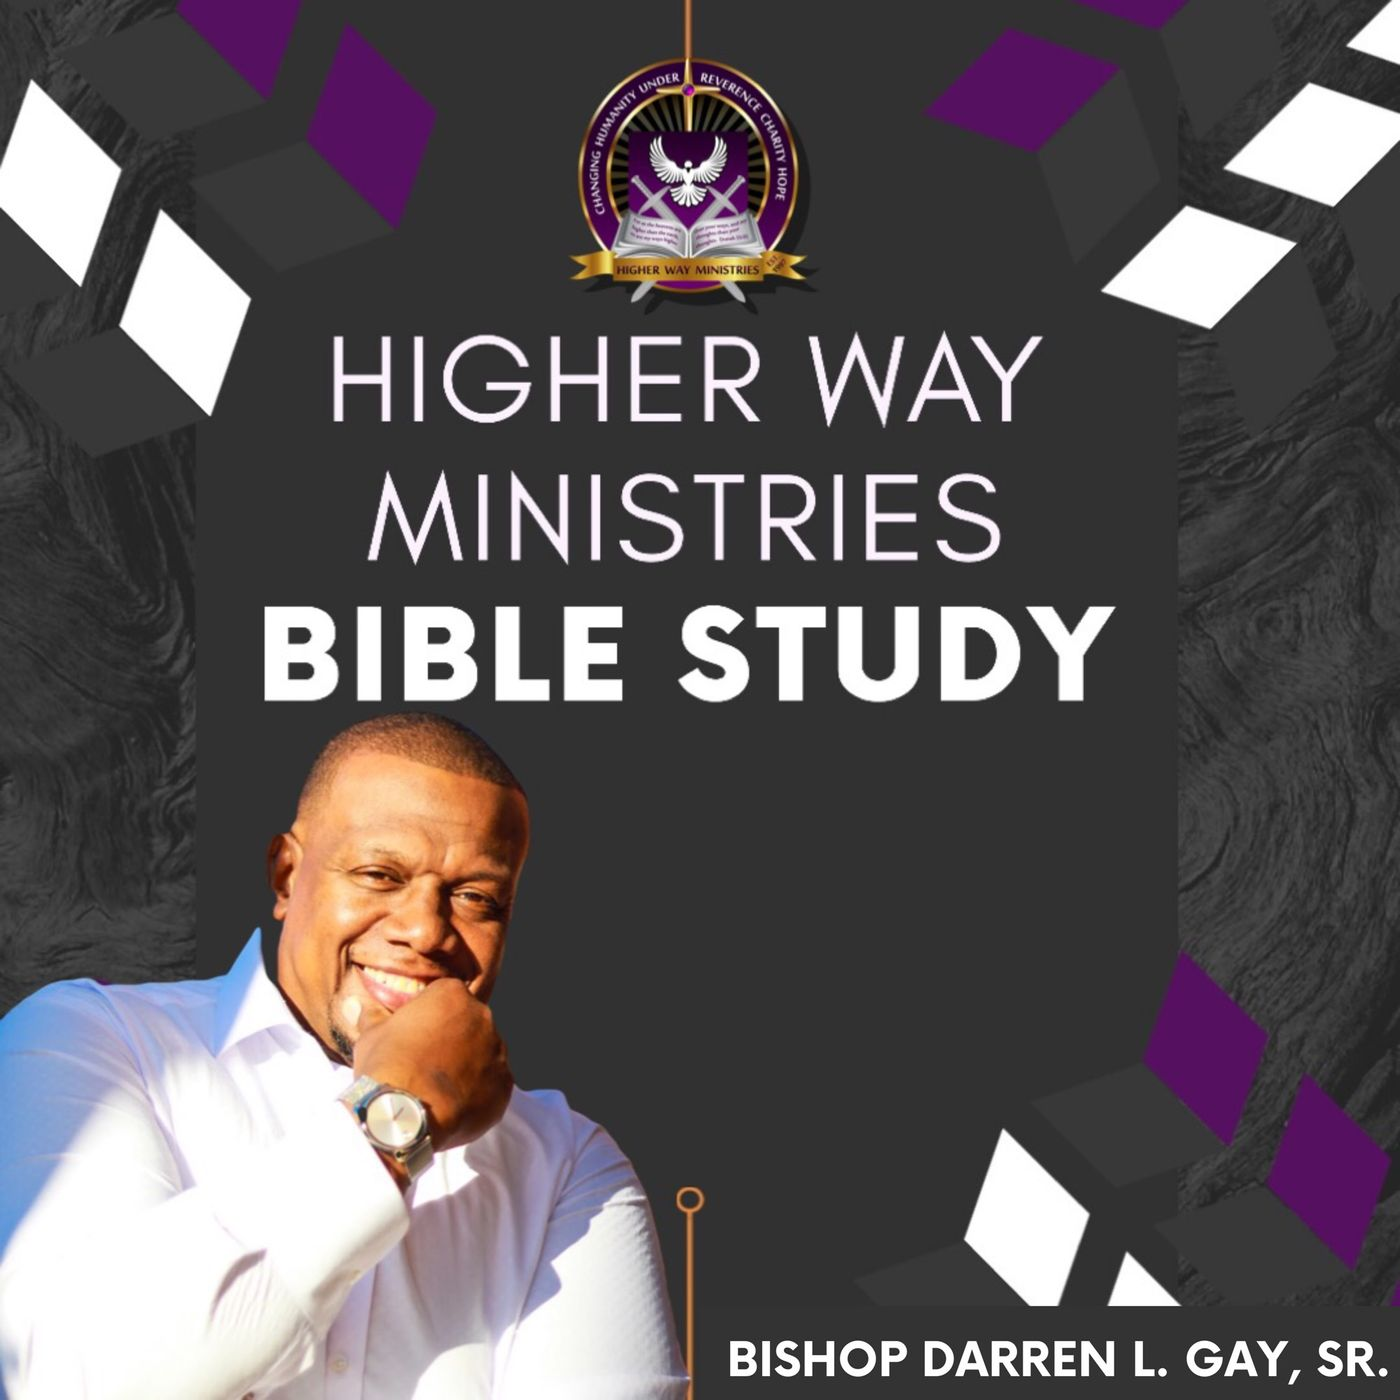 Search and Look - Bishop Darren L. Gay, Sr.